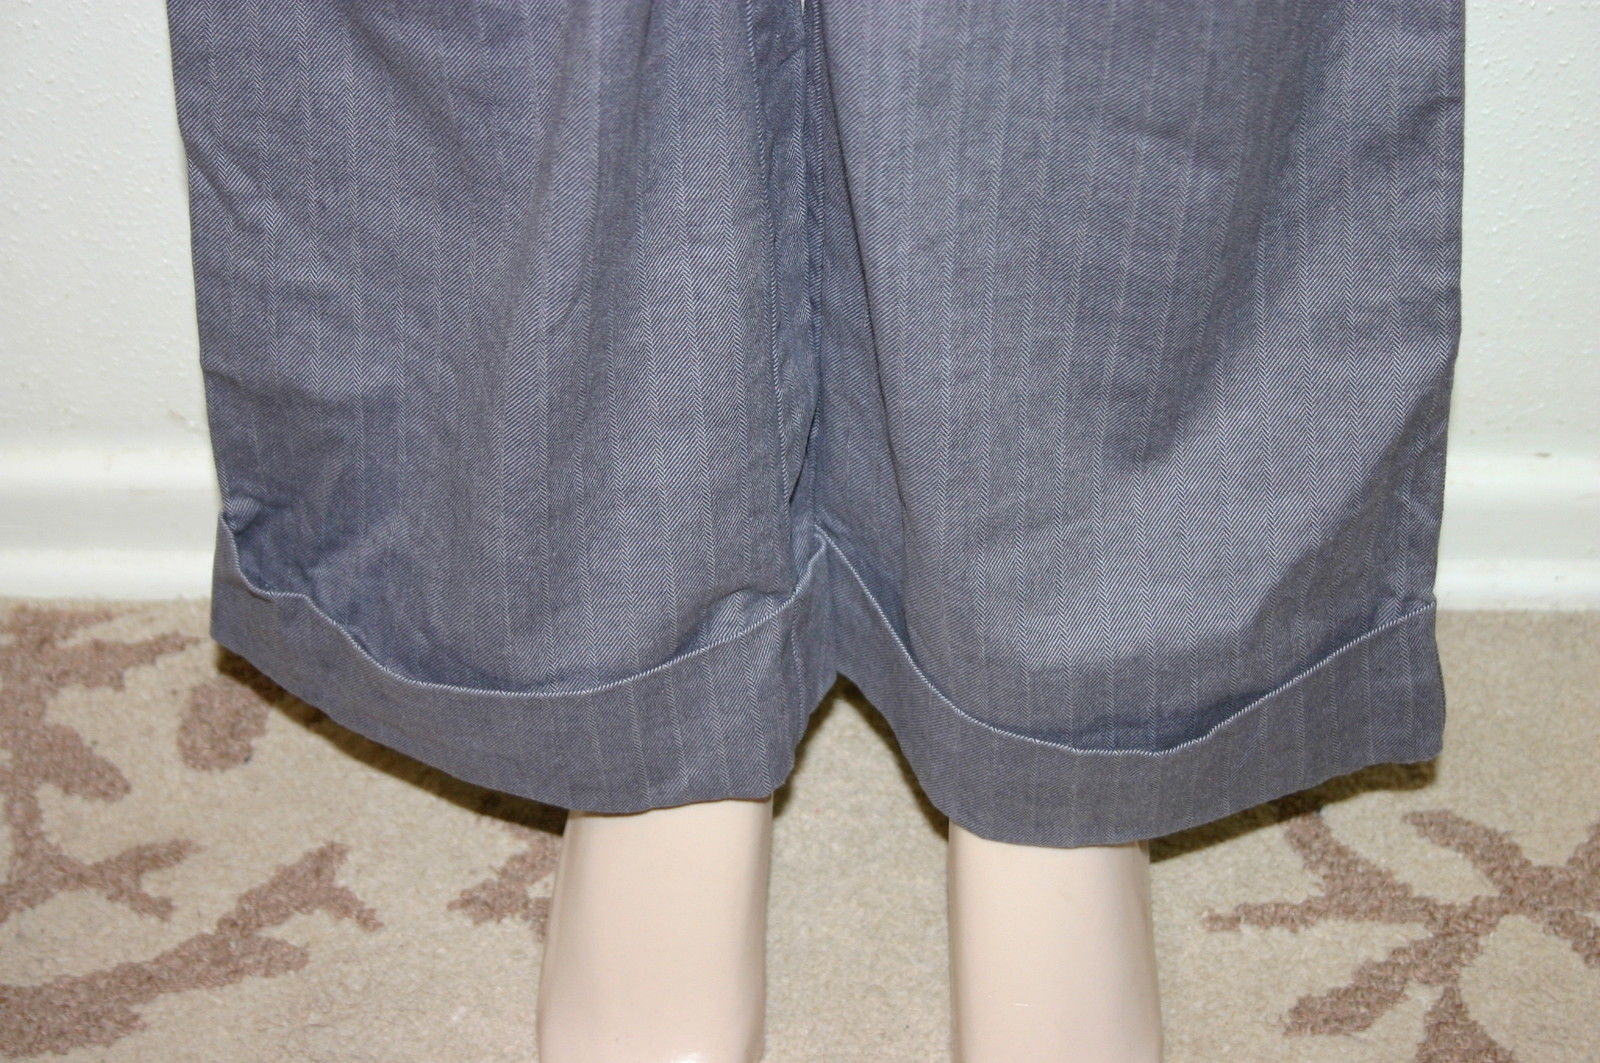 TALBOTS Size 6 Gray Striped Cuffed Stretch Cotton Career Dress Pants Trousers